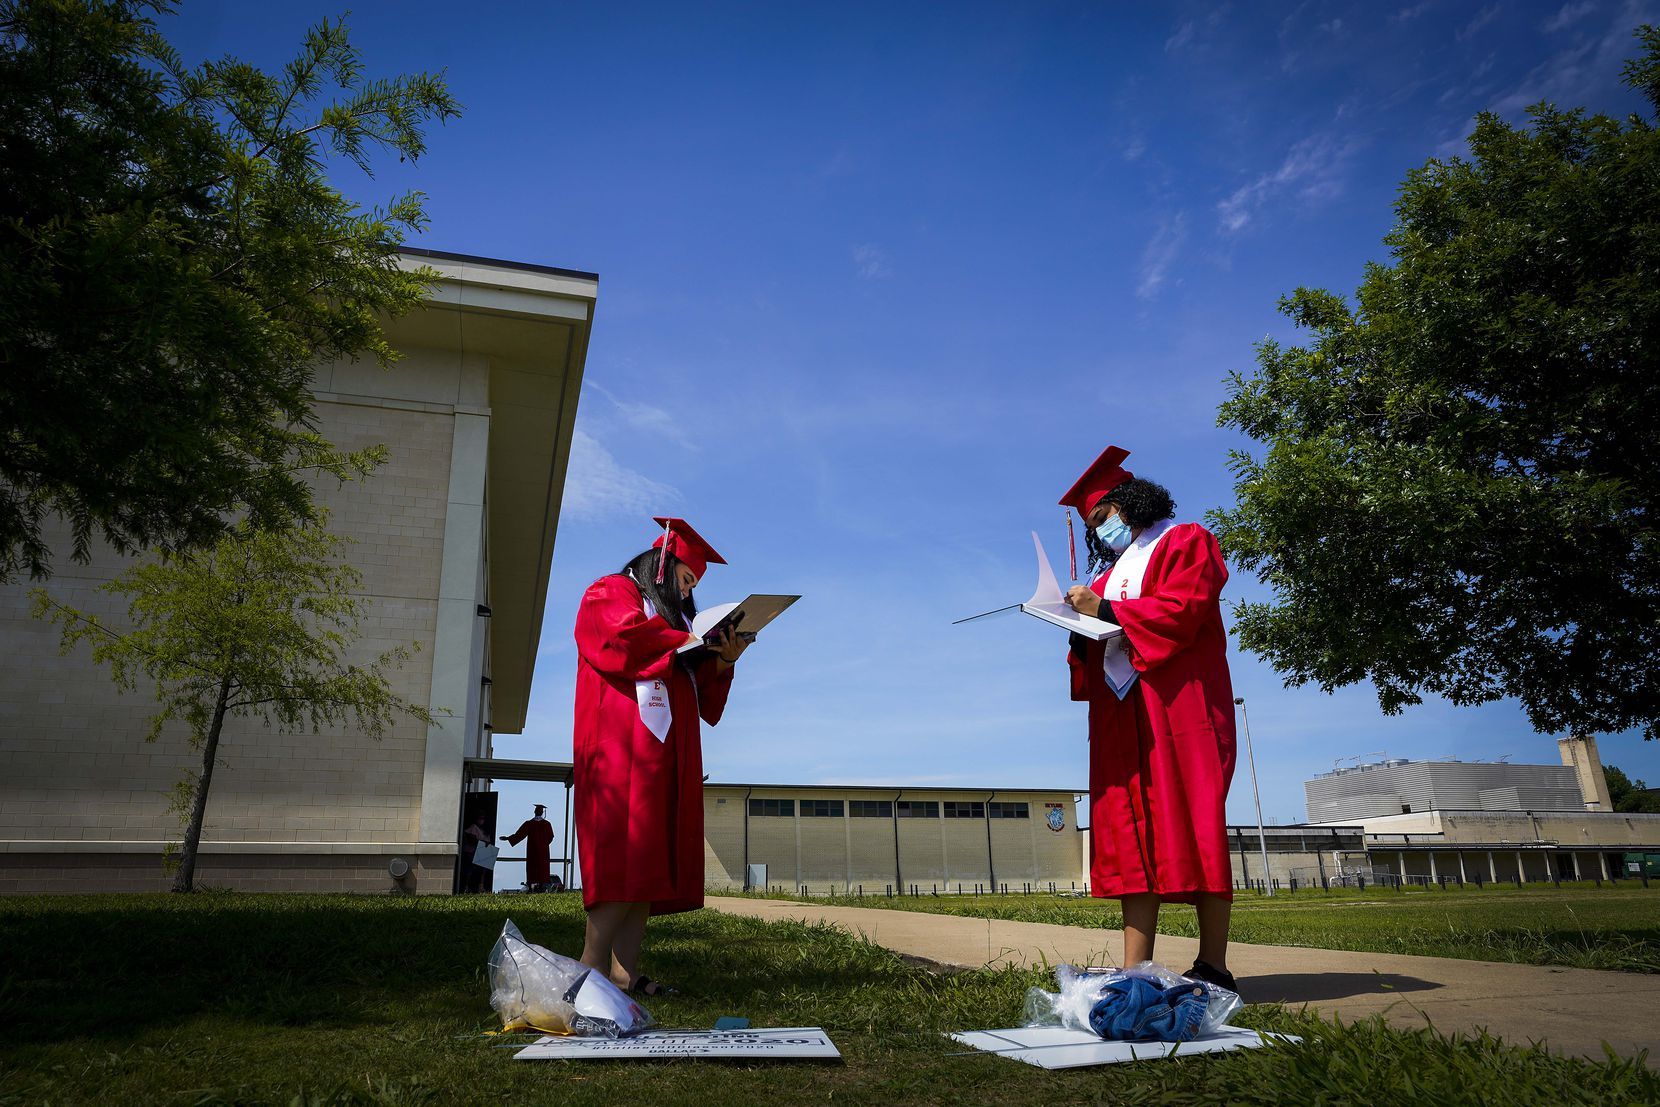 Andrea Soto (left) and Samanta Zuniga, seniors at Skyline High School, signed each other's yearbooks after picking up their graduation caps and gowns in May. Like the rest of Dallas ISD, Skyline's graduation ceremony was virtual.